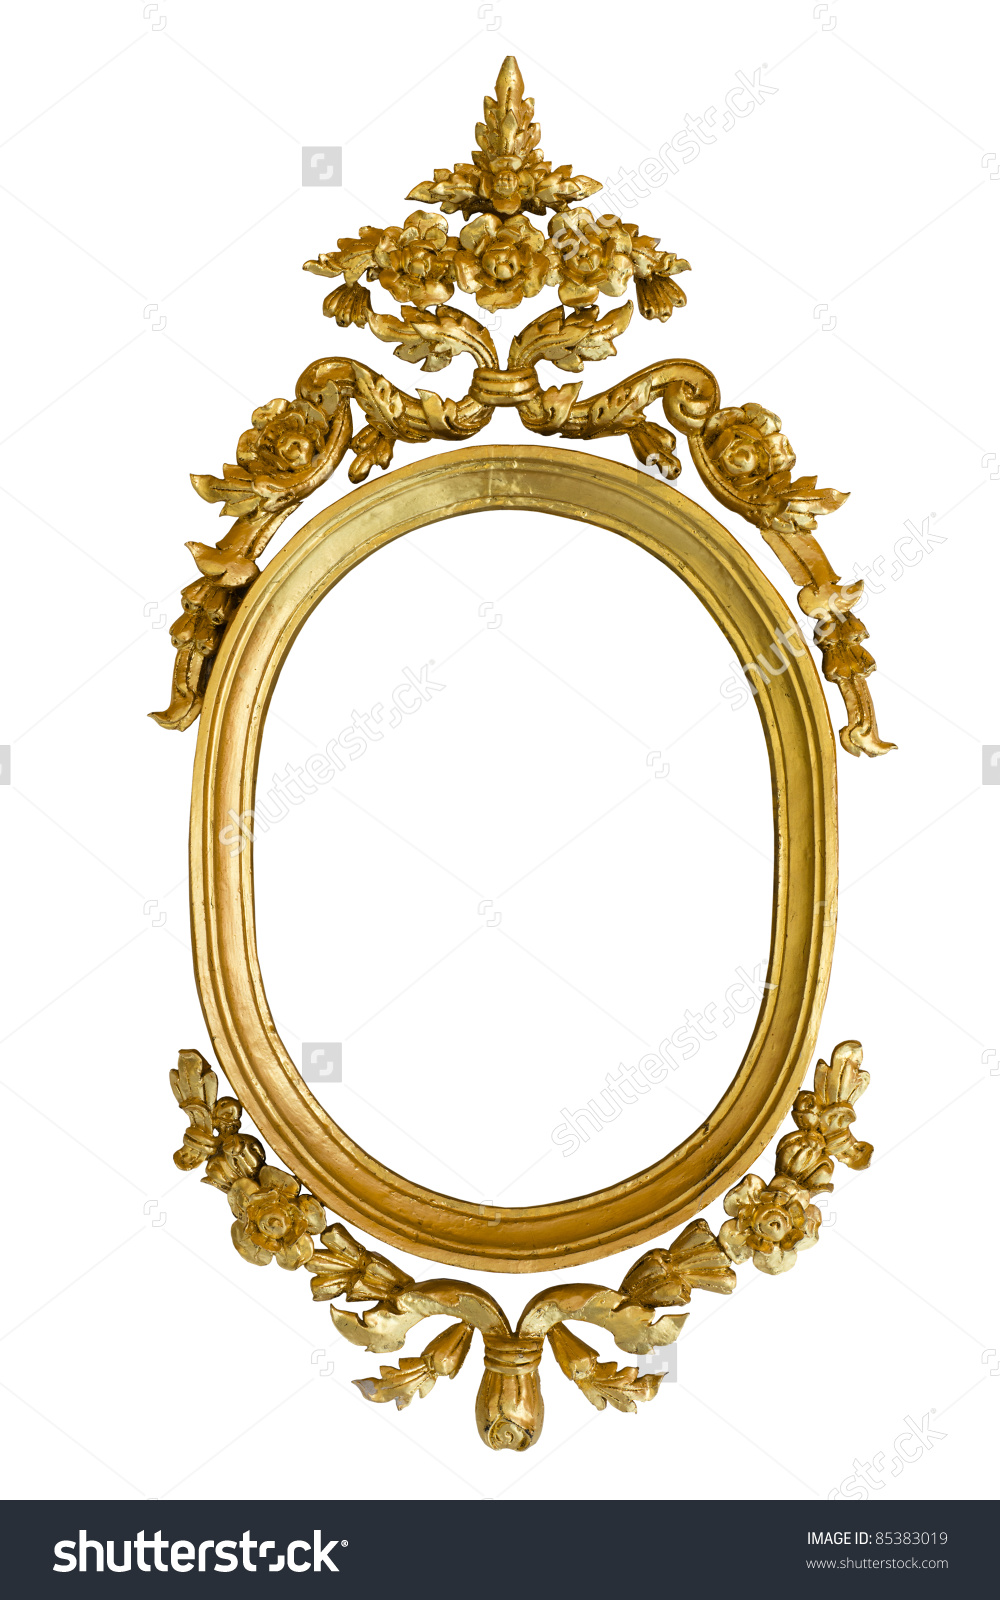 Gold Carved Oval Wood Frame Isolated On White Background Stock.